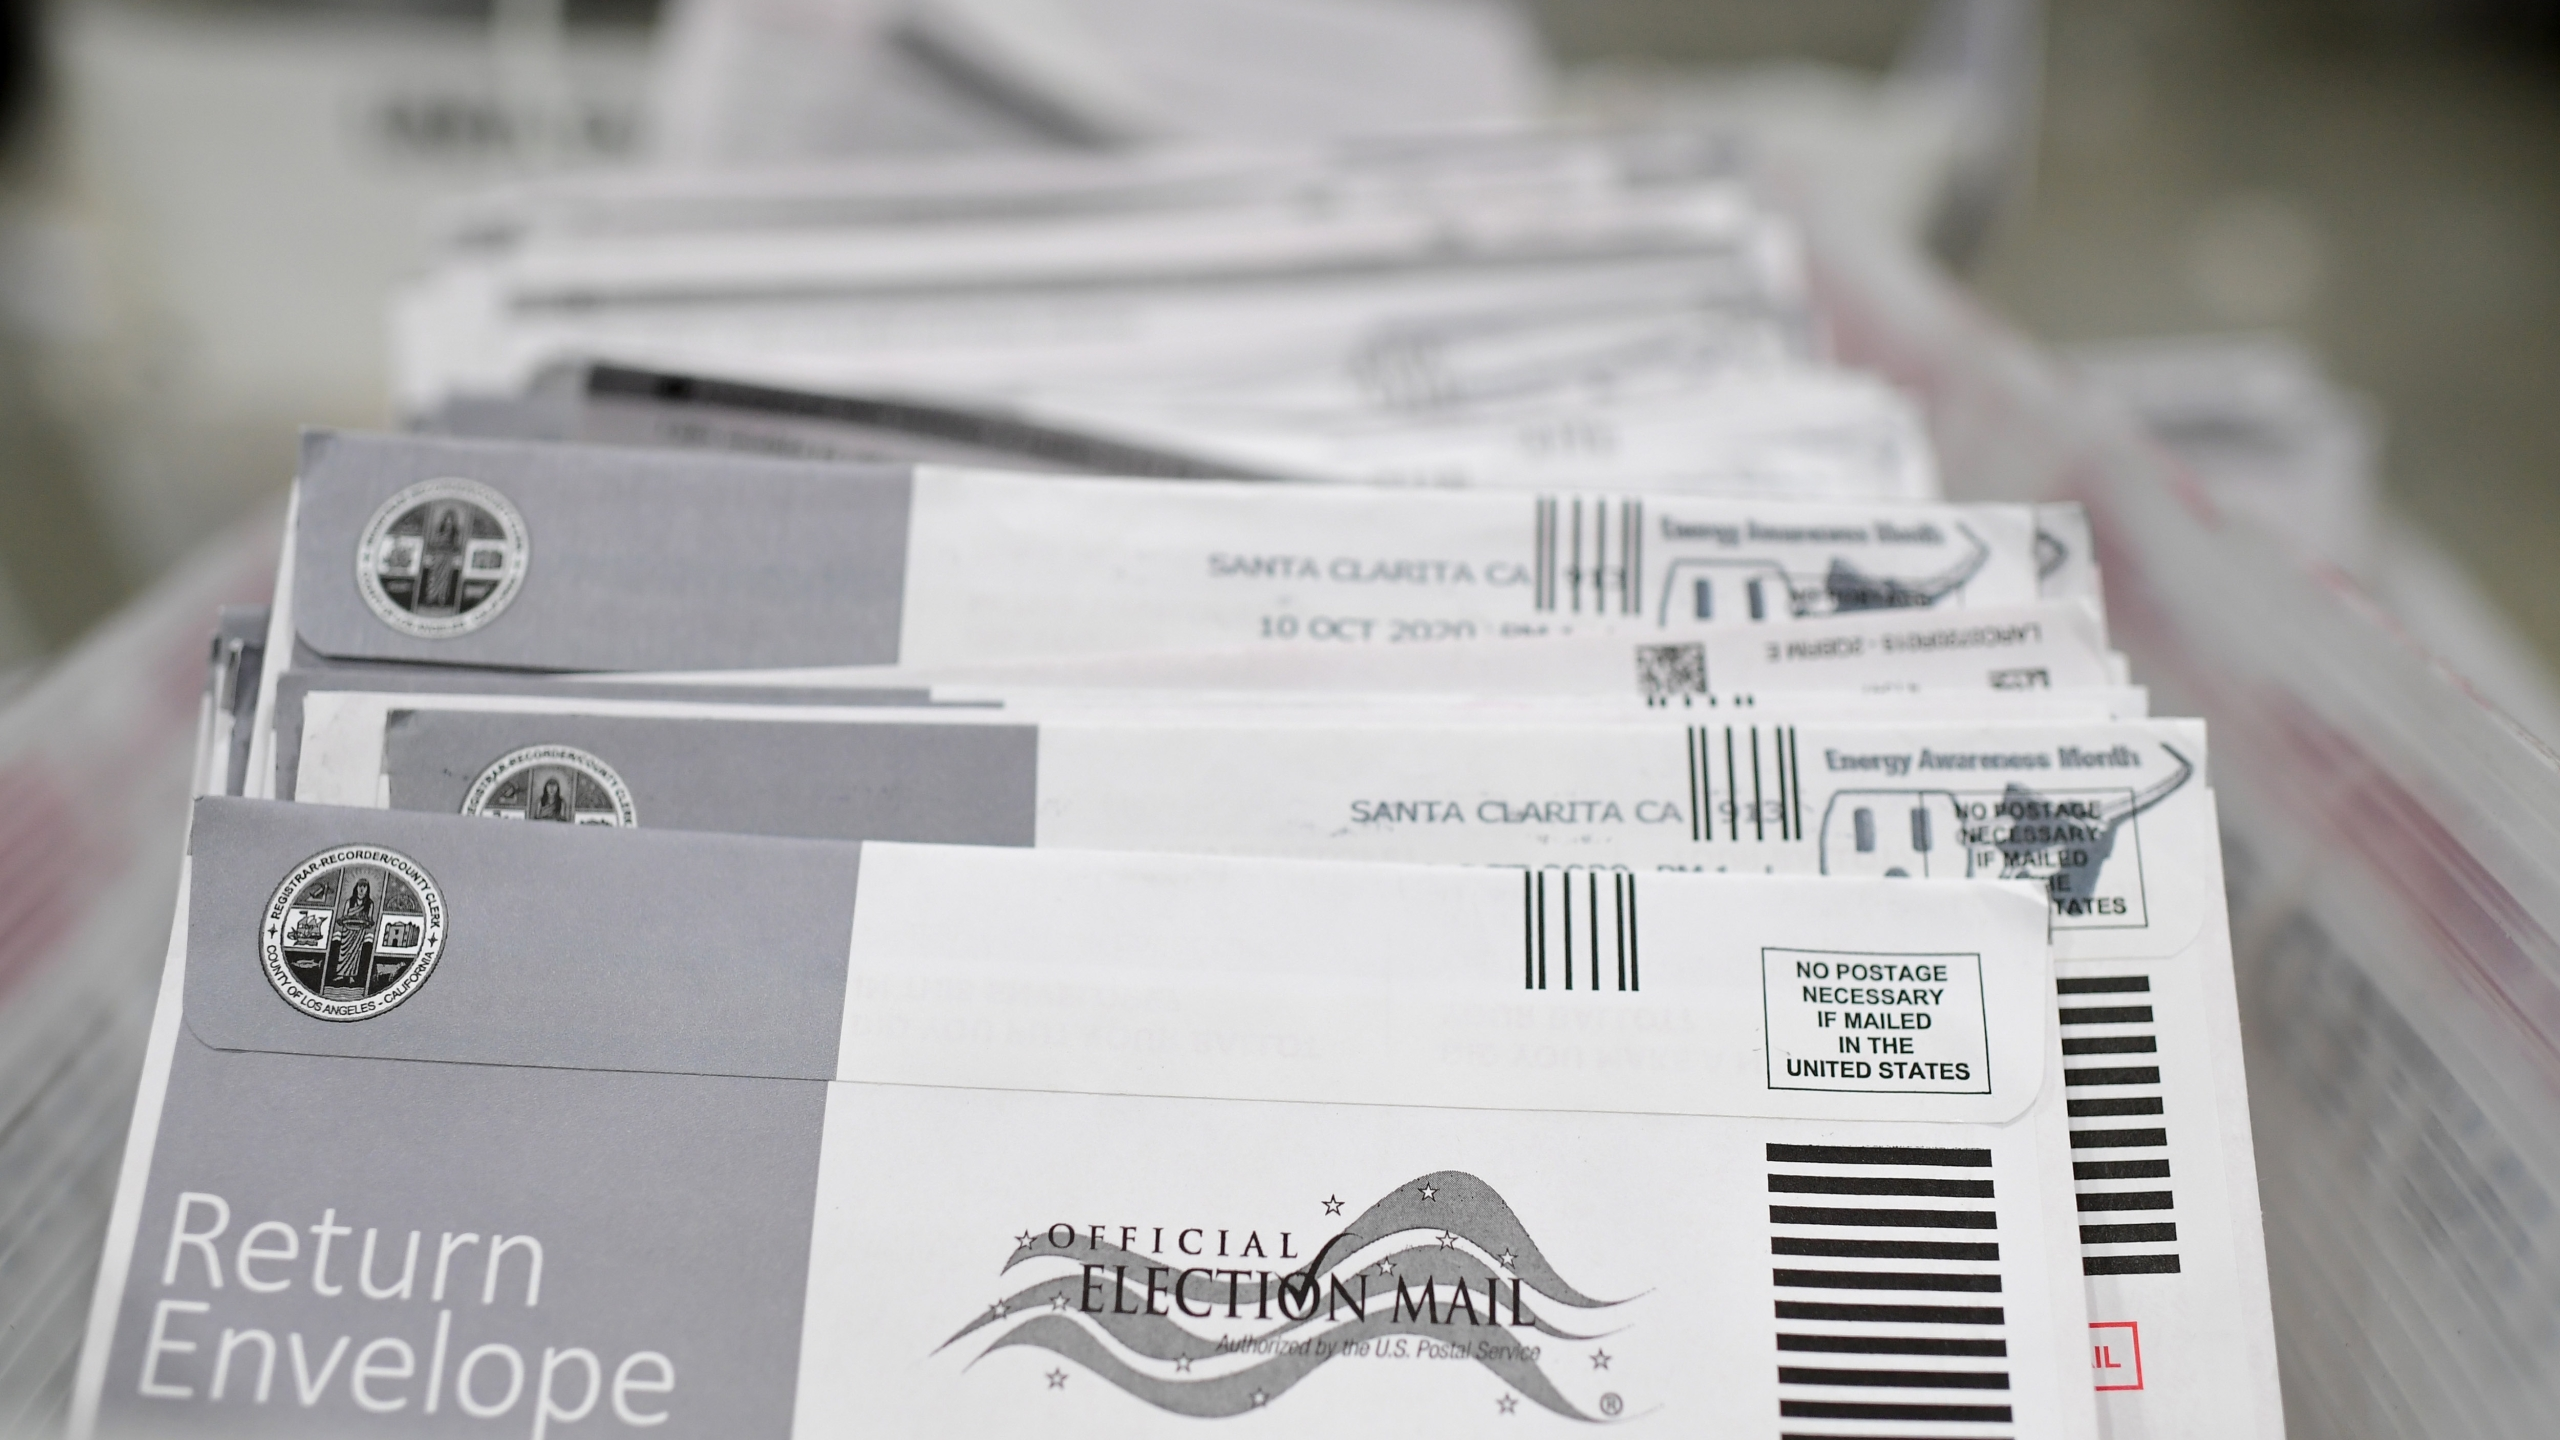 Mail-in ballots in their envelopes await processing at the Los Angeles County Registrar Recorders' mail-in ballot processing center at the Pomona Fairplex on Oct. 28, 2020. (Robyn Beck / AFP / Getty Images)